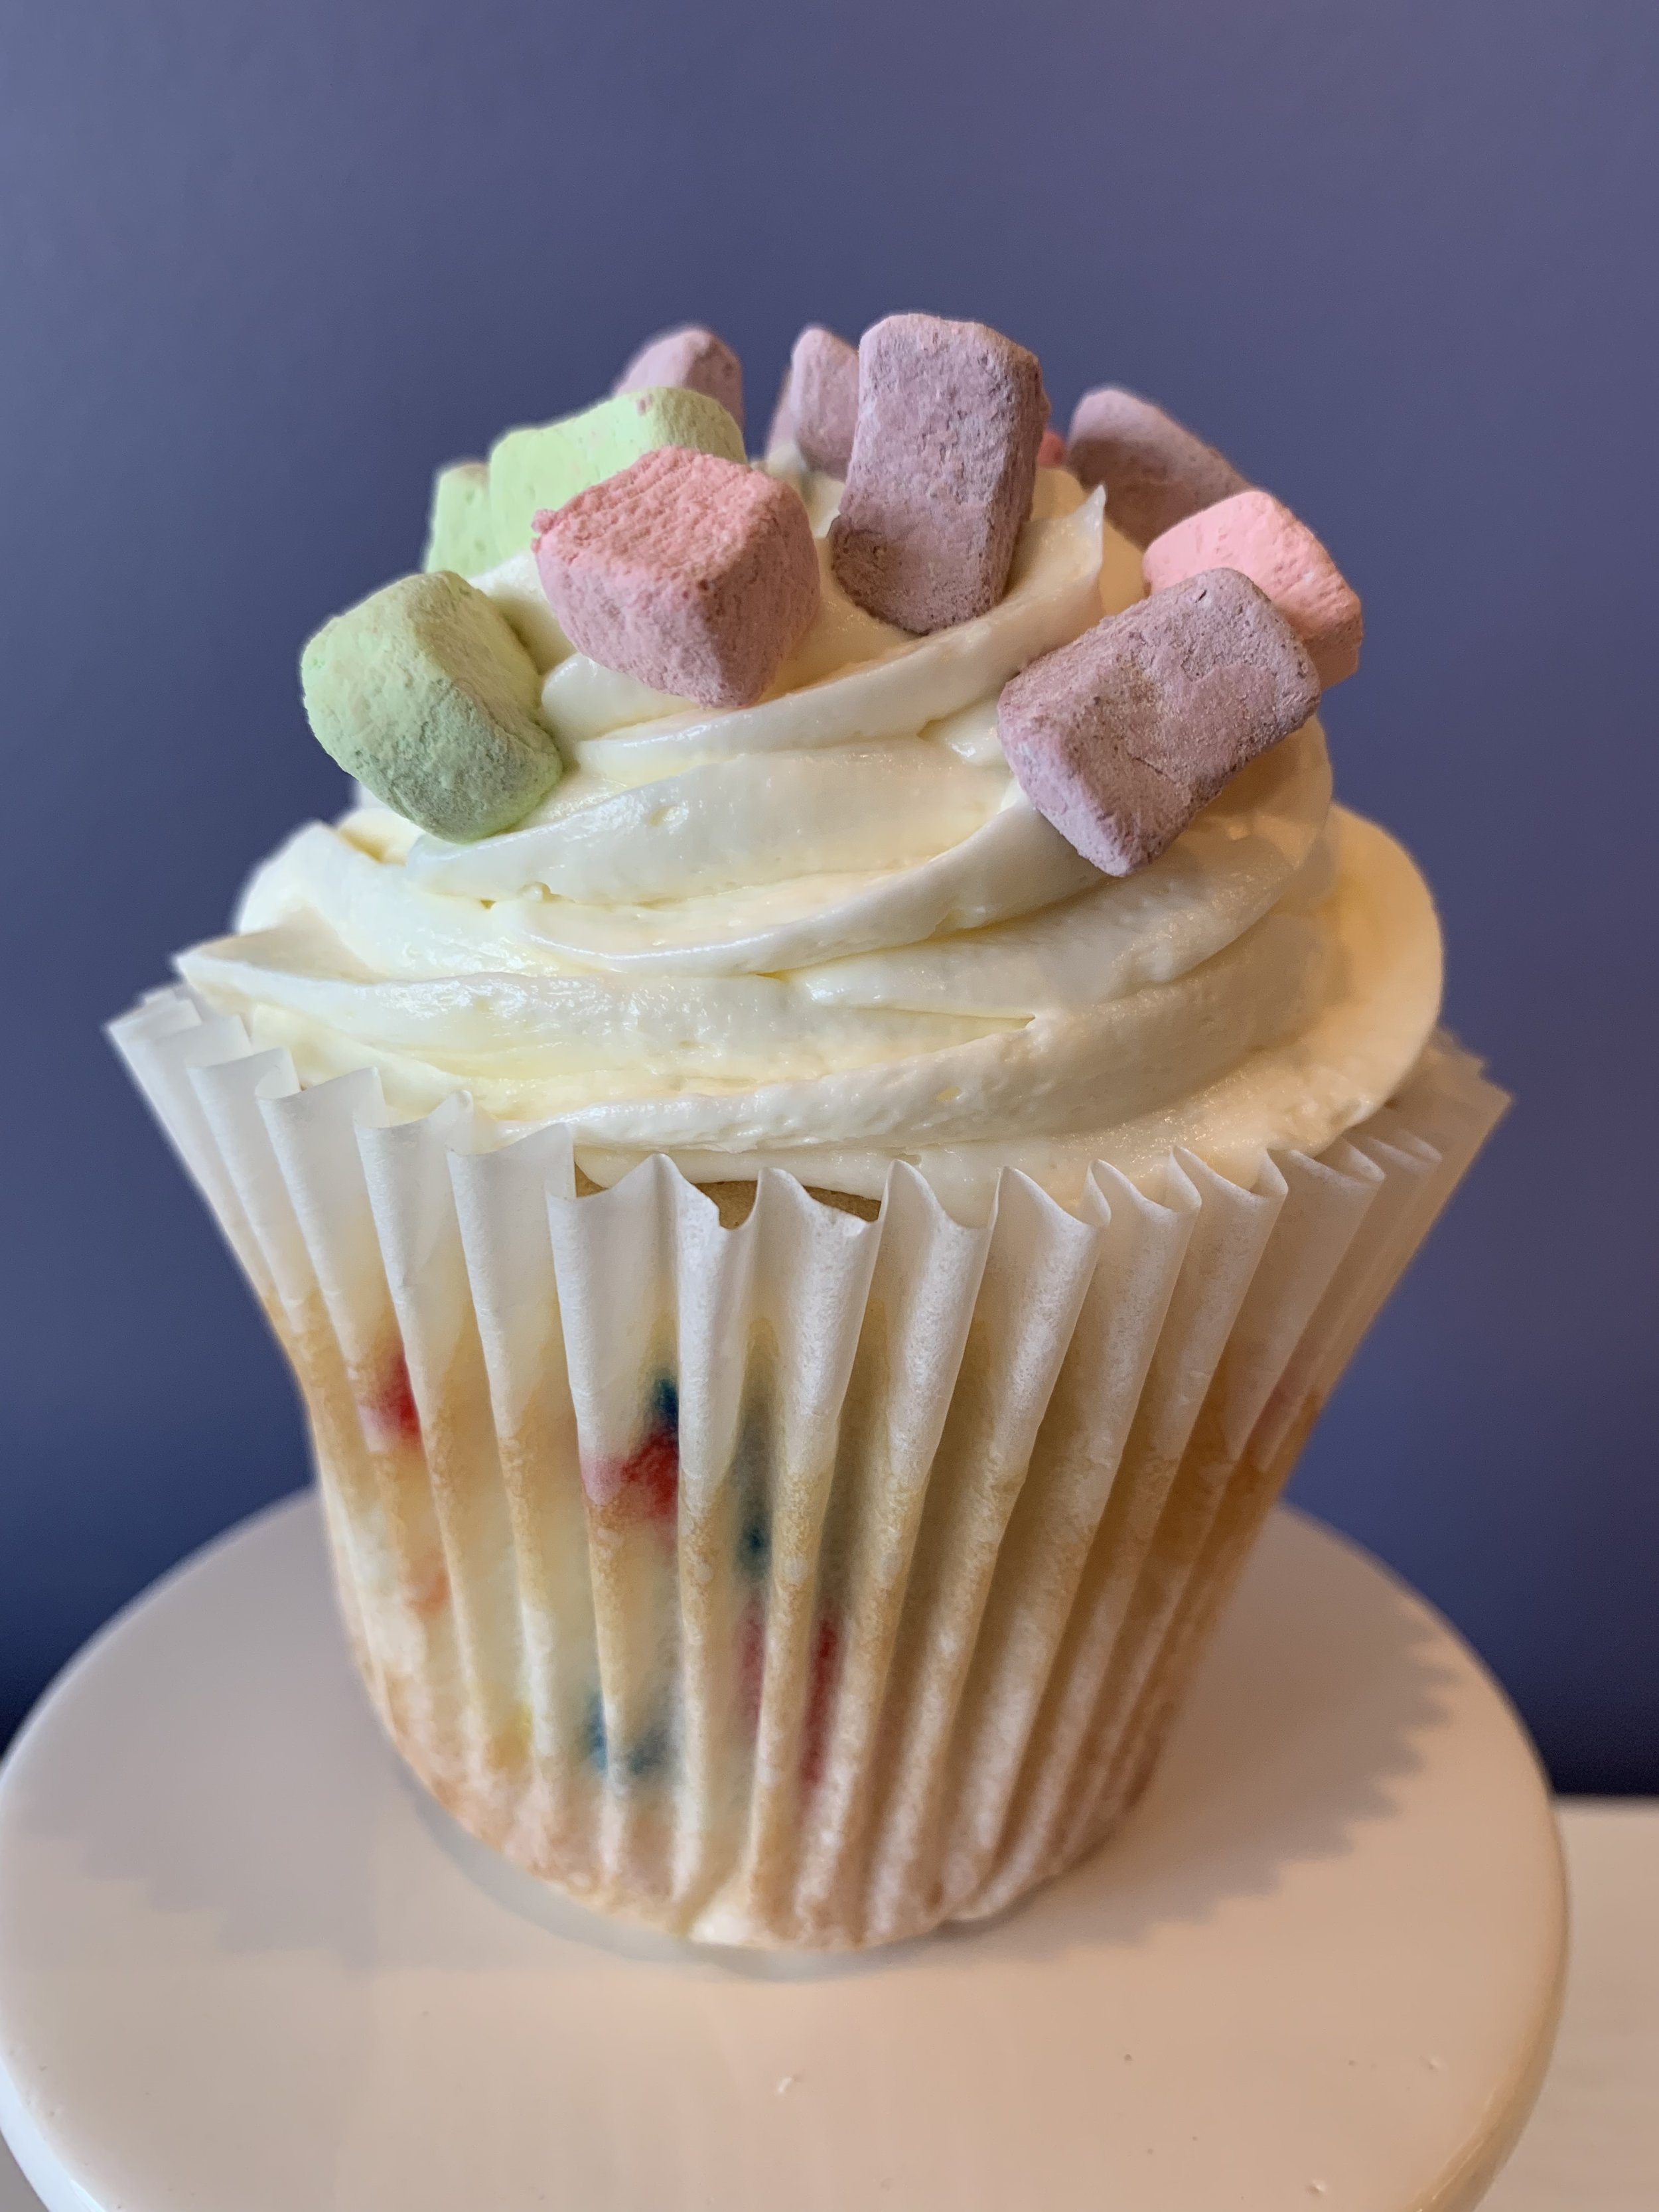 Lucky Charms - White cake with rainbow sprinkles in the batter topped with marshmallow buttercream and lucky charm marshmallows.Vegan and Gluten Free available